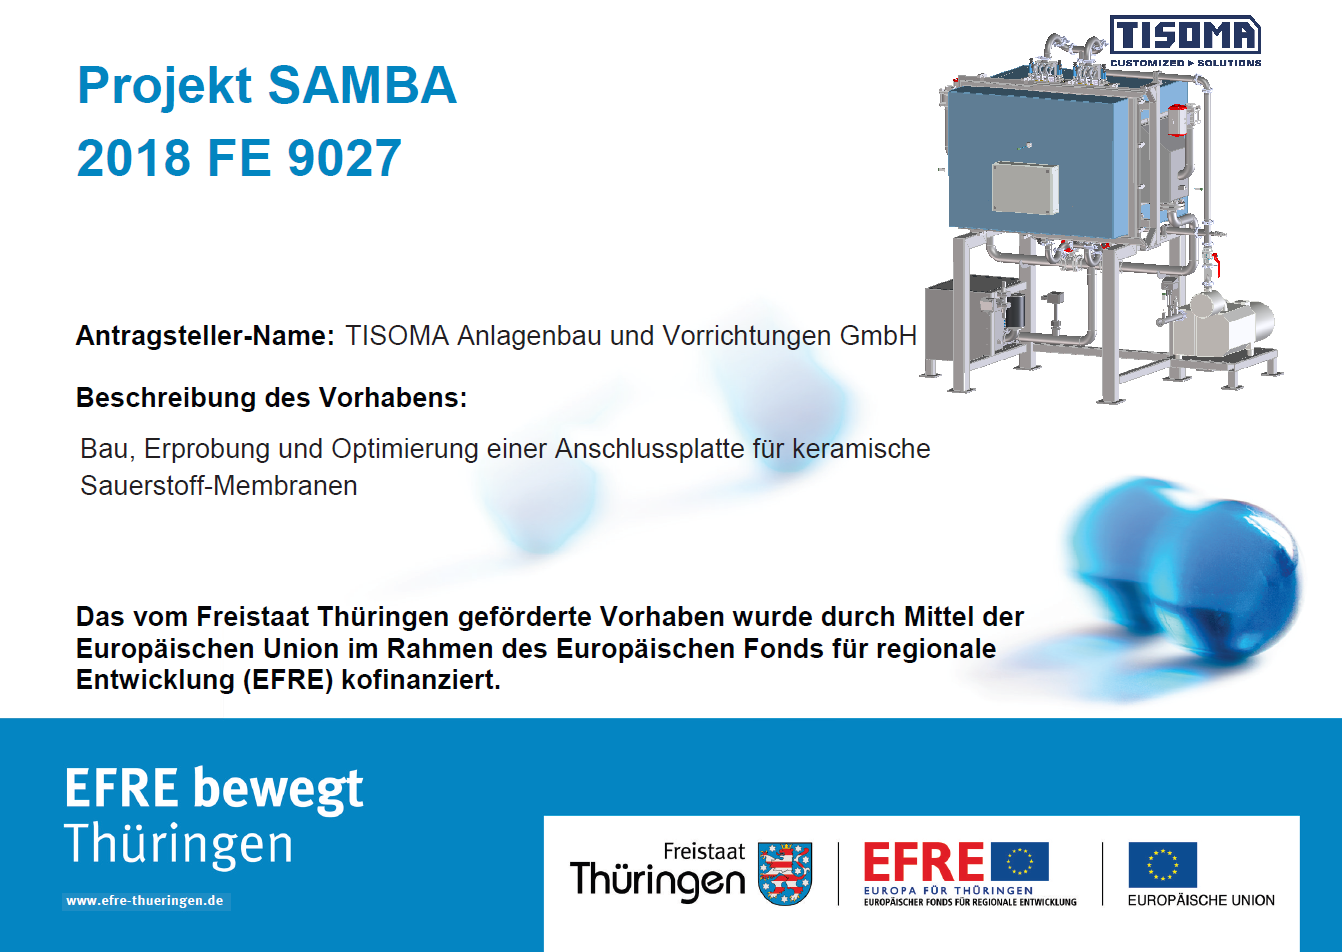 poster project SAMBA - 2018 FE 9027 _ EFRE